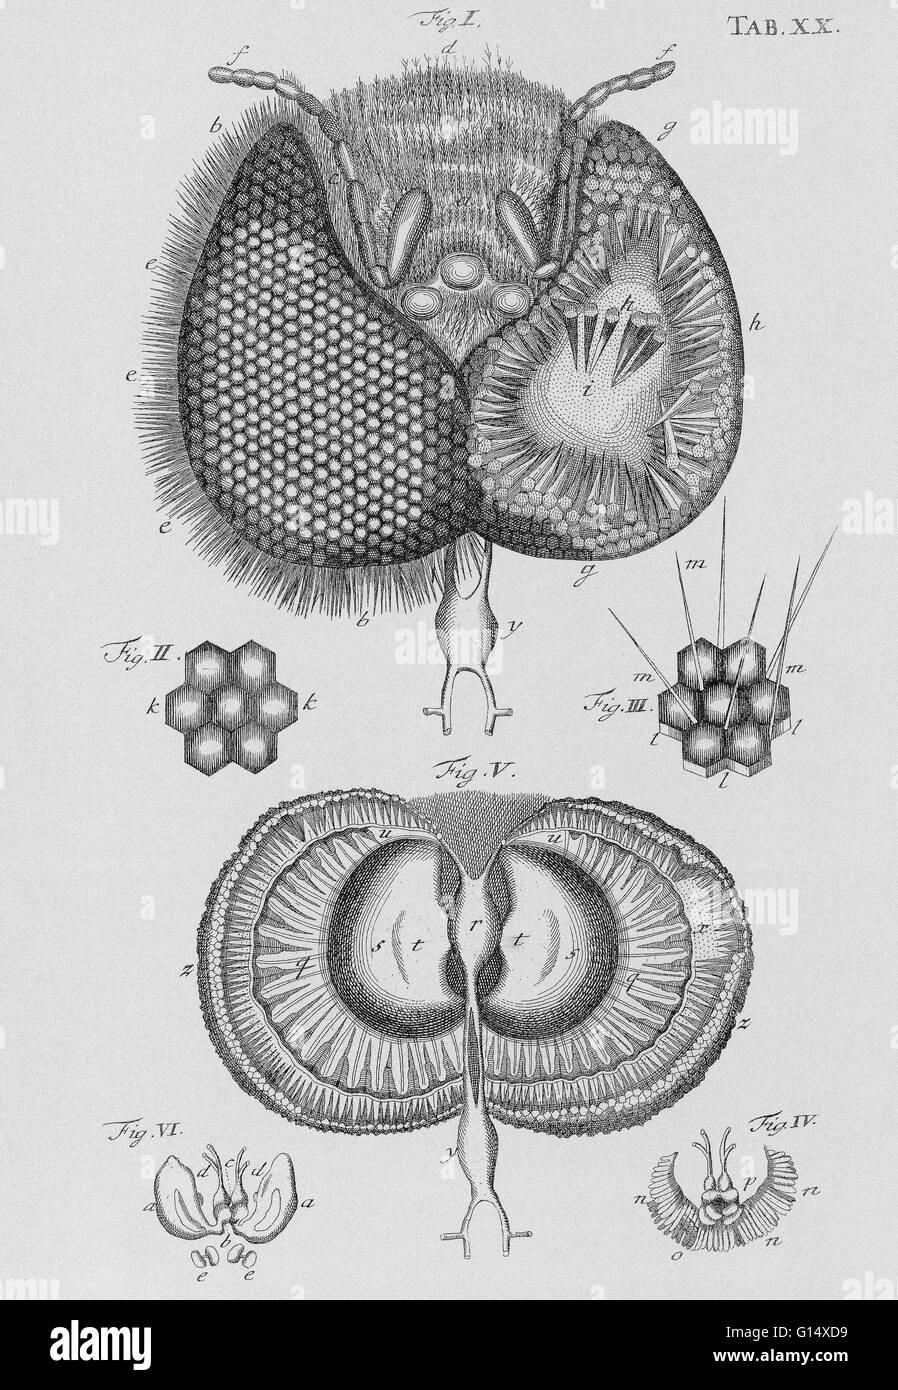 Honey bee eye drawing of the structure of the eye of a honey bee honey bee eye drawing of the structure of the eye of a honey bee apis mellifera by the dutch naturalist jan swammerdam 1637 1680 ccuart Images